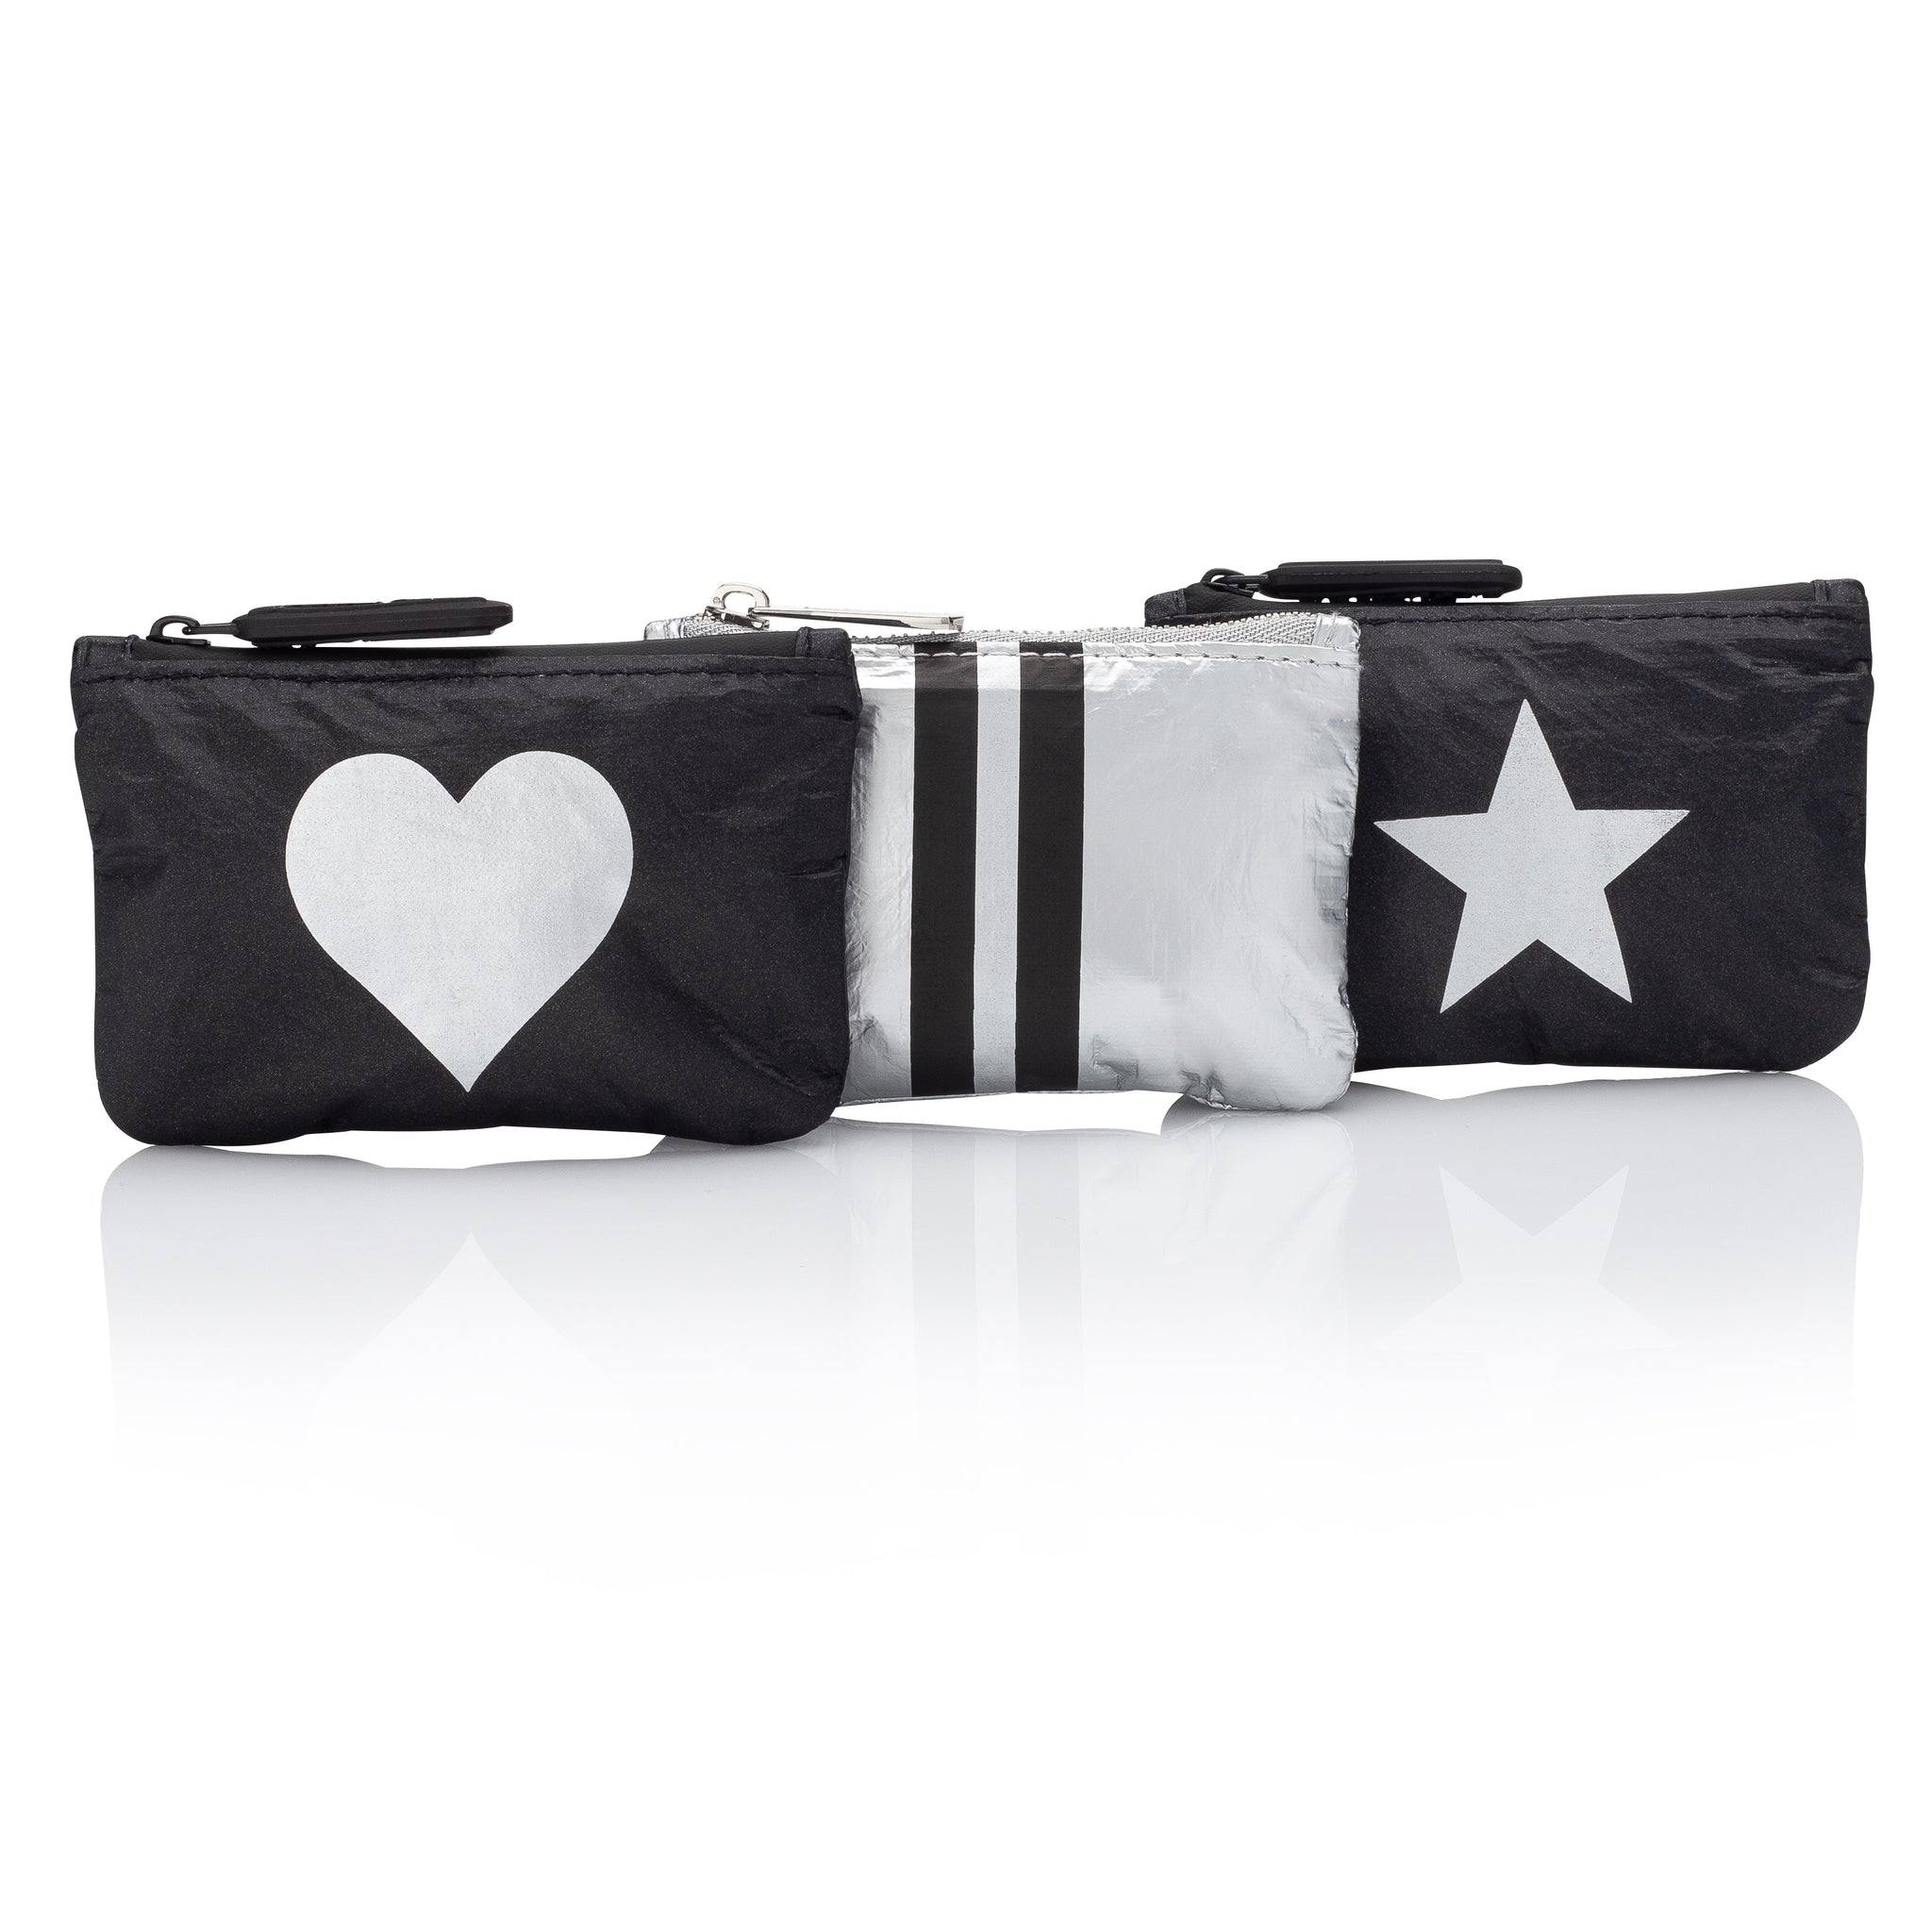 Set of Three Gift Card Holder Packs - Shimmer Black Collection with Heart, Stripe & Star